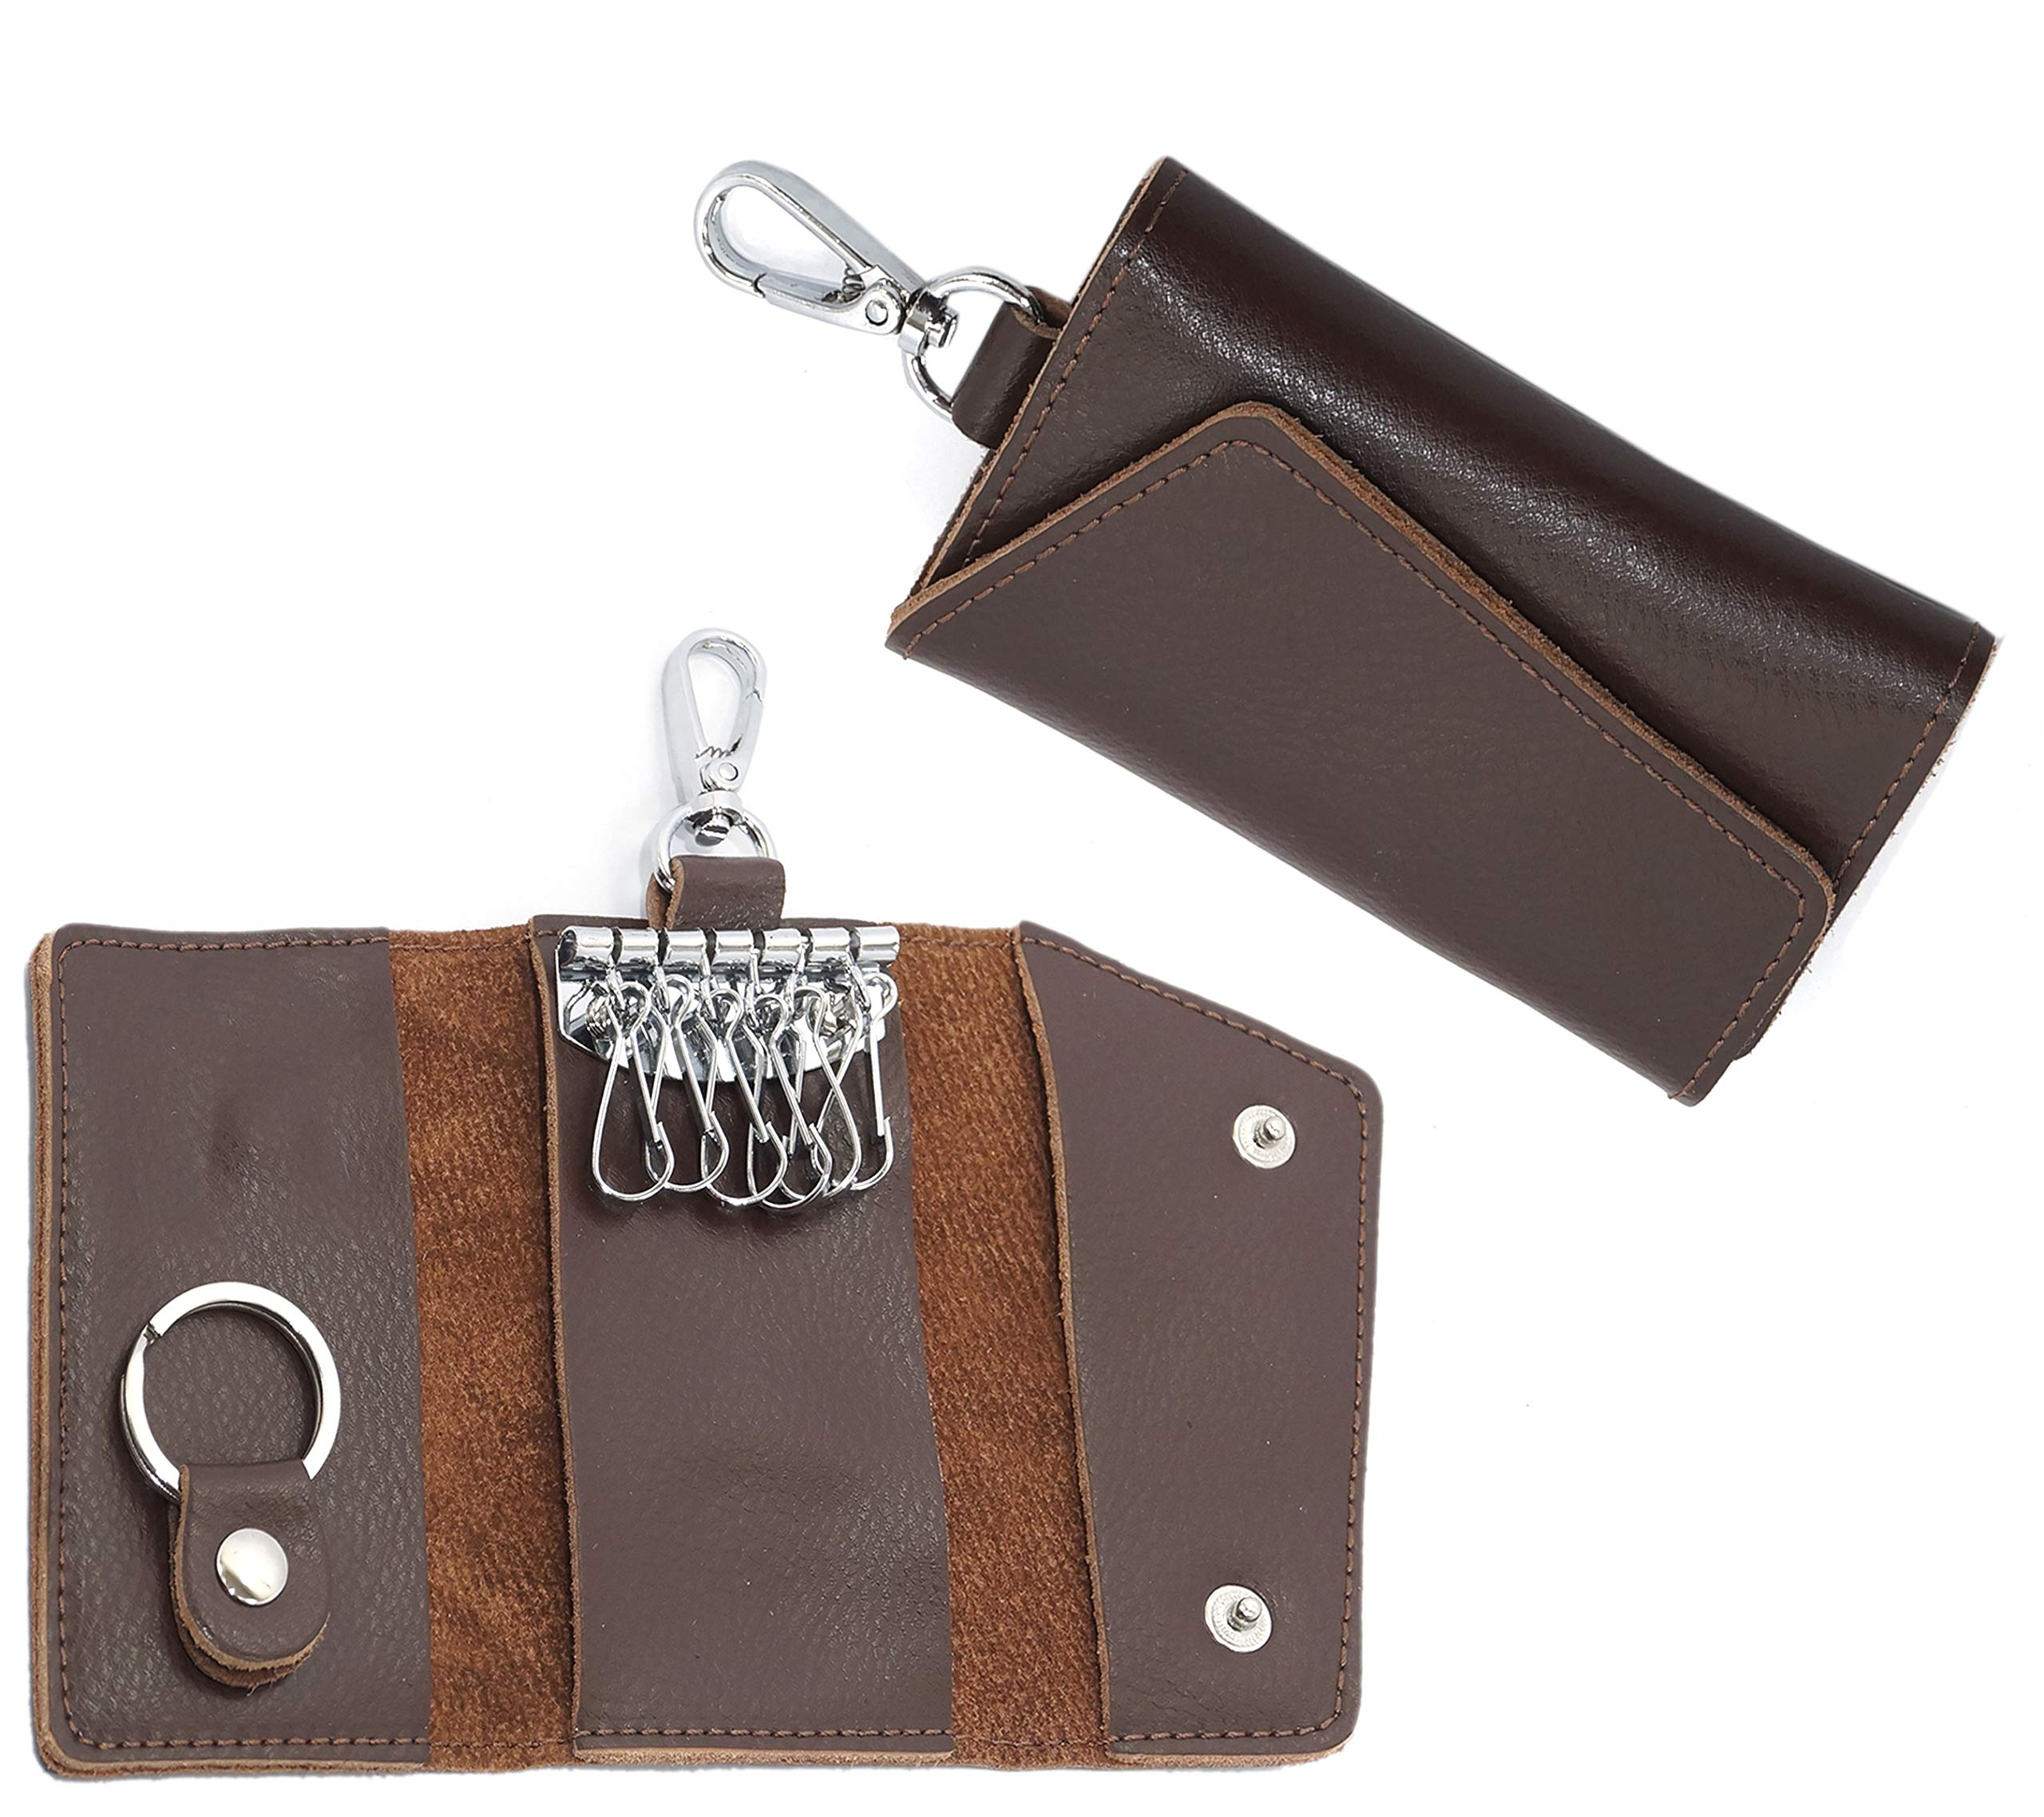 45afc2b3751c SEPAL Leather Keychain Key Holder Ring Key Pouch Wallet Case with 6 Hooks  Snap Closure for Men Women 10 x 6 cm Brown - SukhRog